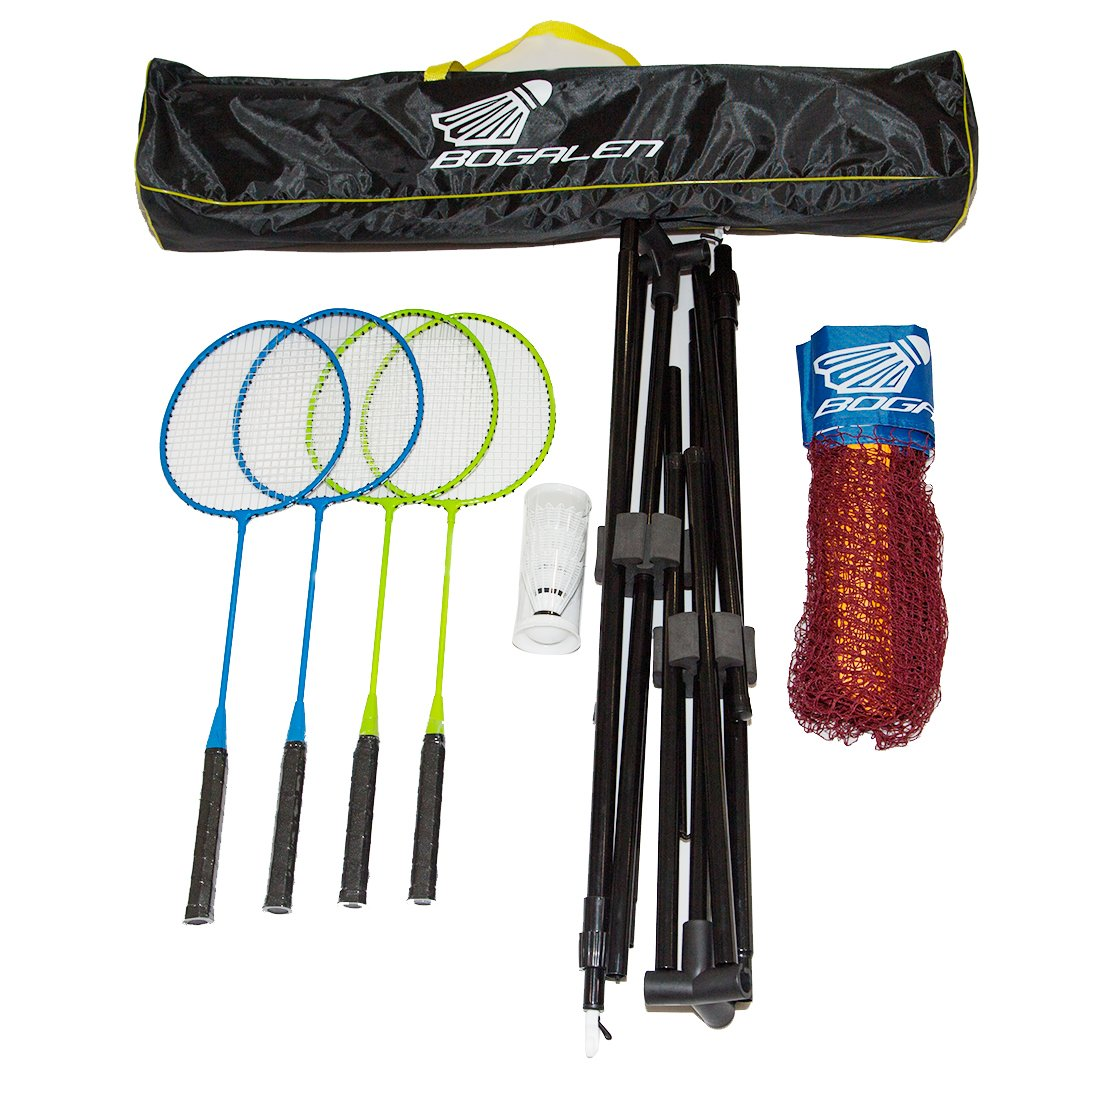 Bogalen Height Adjustable Badminton and Tennis Portable Net Set with 10-Feet Net, 4 Rackets and 3 Shuttlecocks by Bogalen (Image #1)